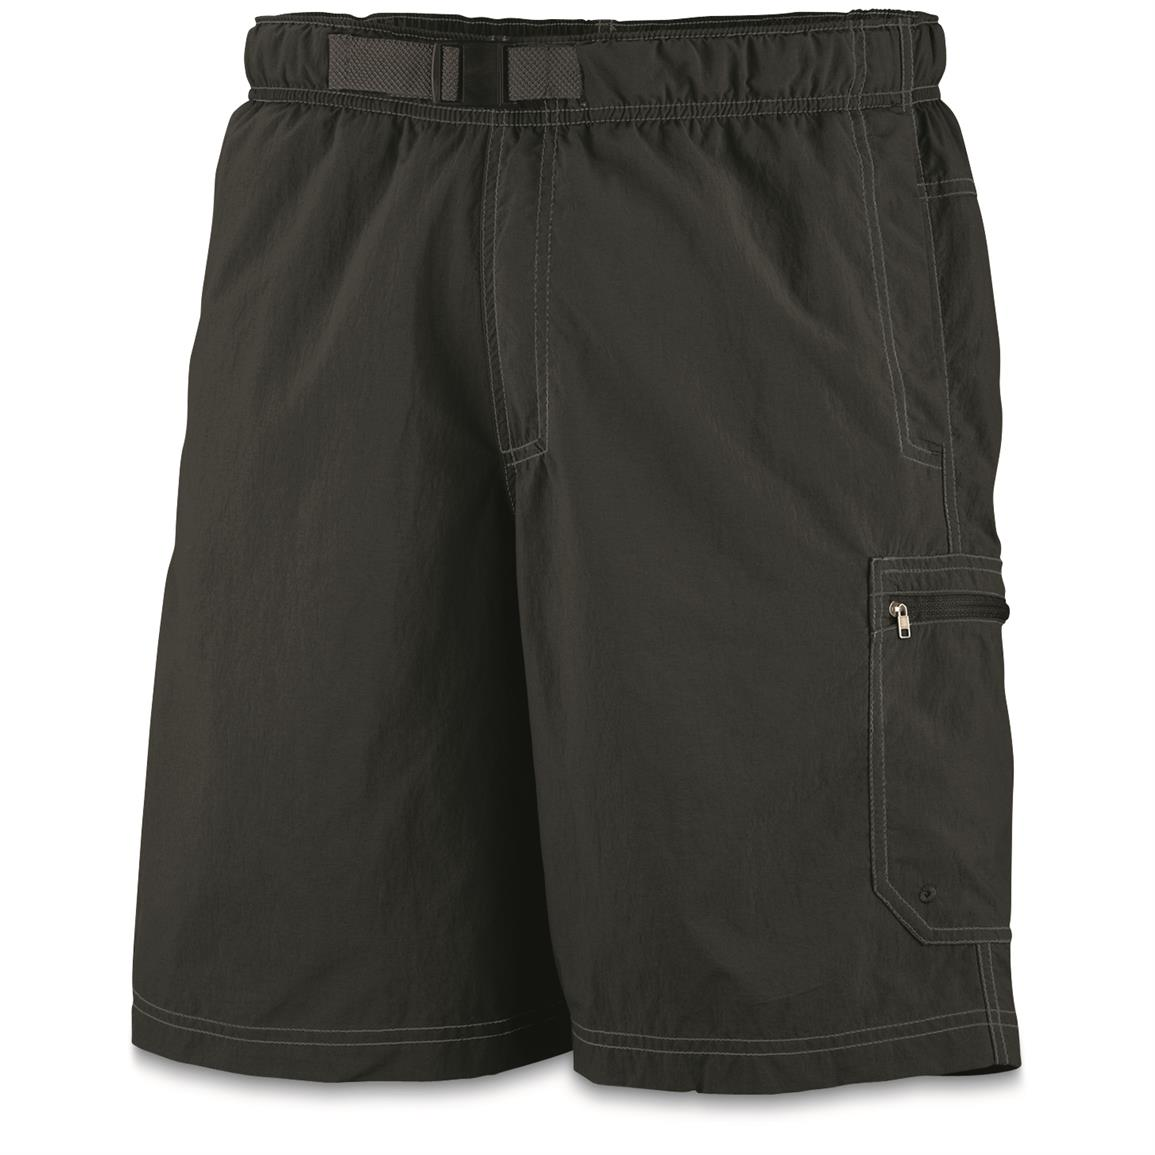 Columbia Men's Palmerston Peak Water Shorts, Black • Front